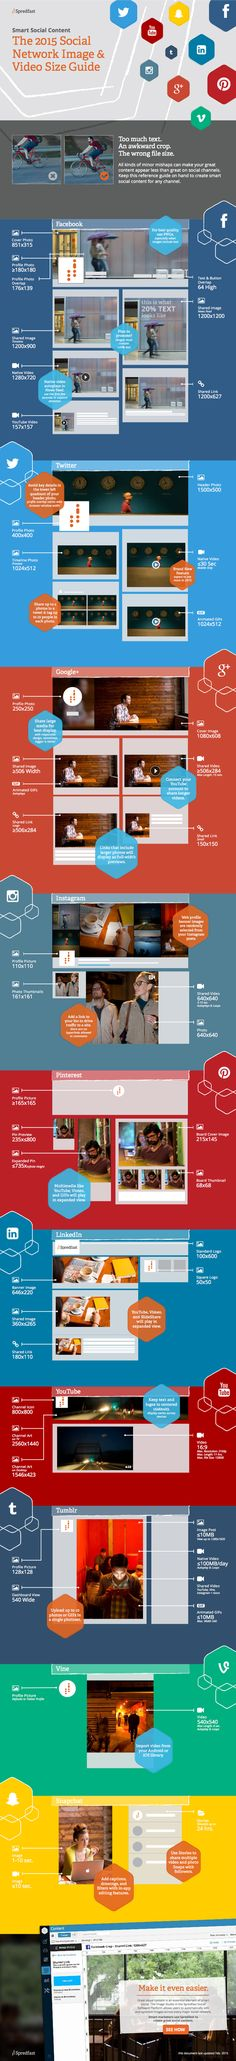 Infographic: Optimal Image Sizes For All The Social Networks